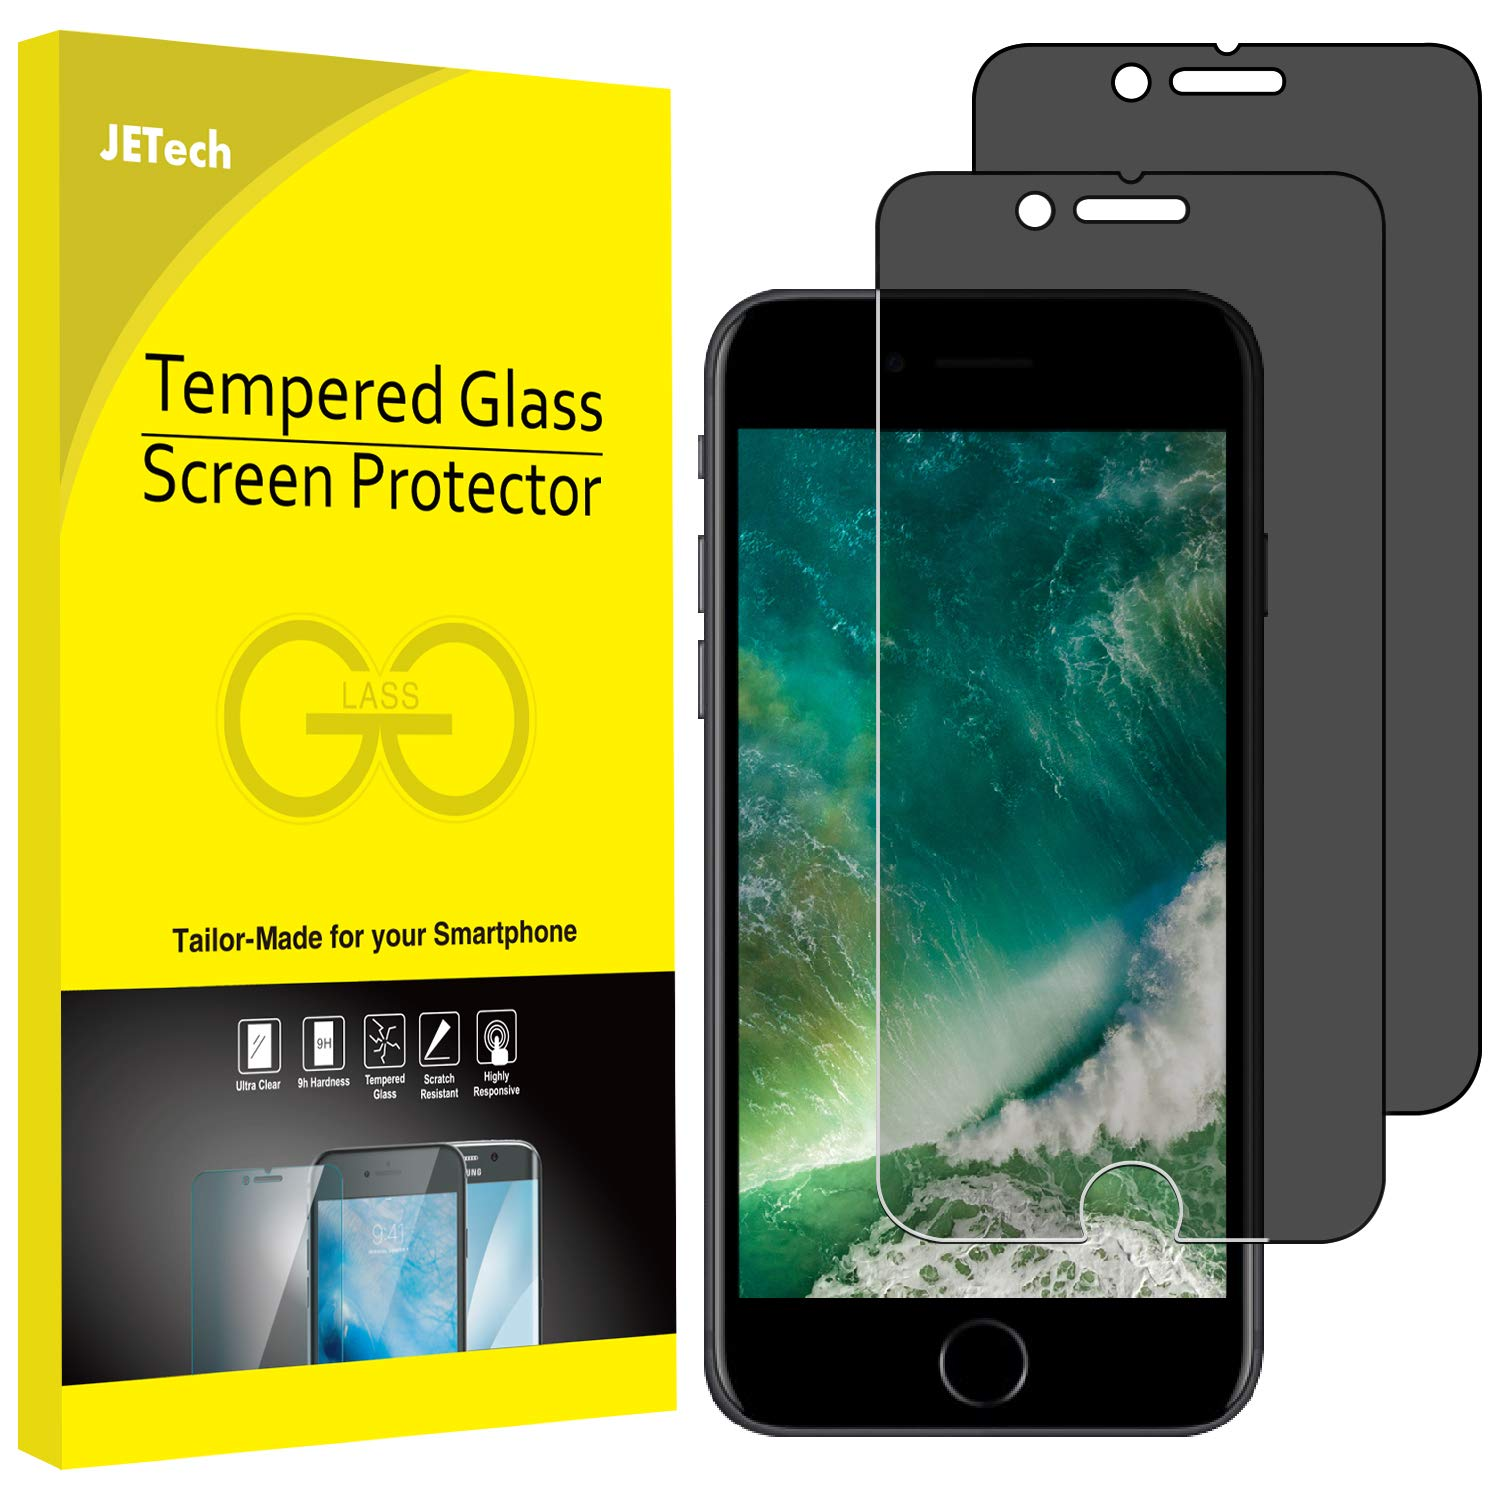 JETech Privacy Screen Protector for iPhone 8 Plus and iPhone 7 Plus, Anti-Spy Tempered Glass Film, 2-Pack by JETech